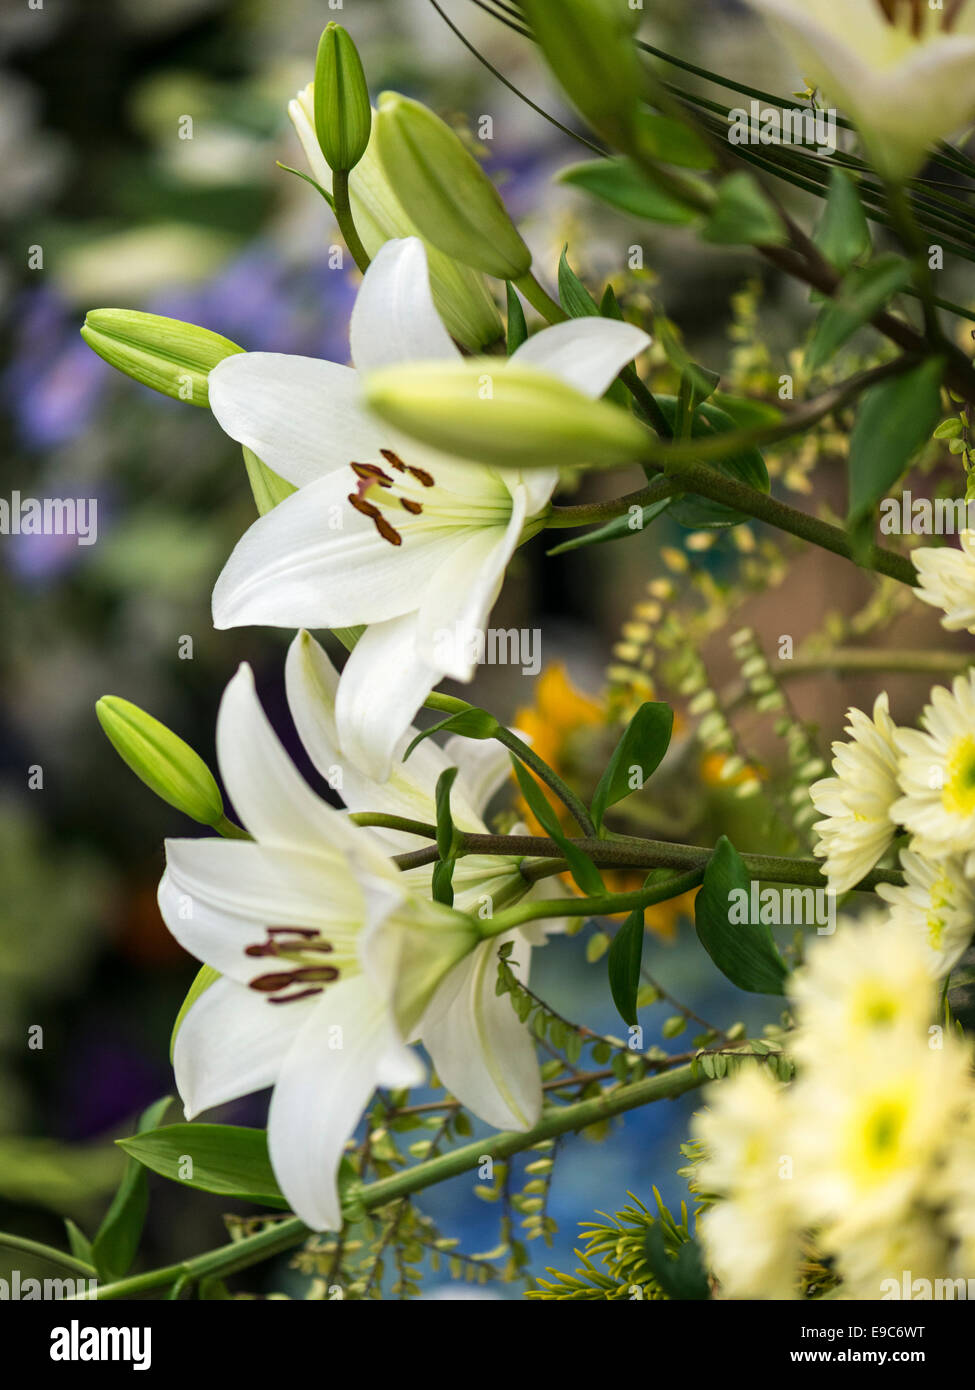 Lilium White flowers and green buds. - Stock Image